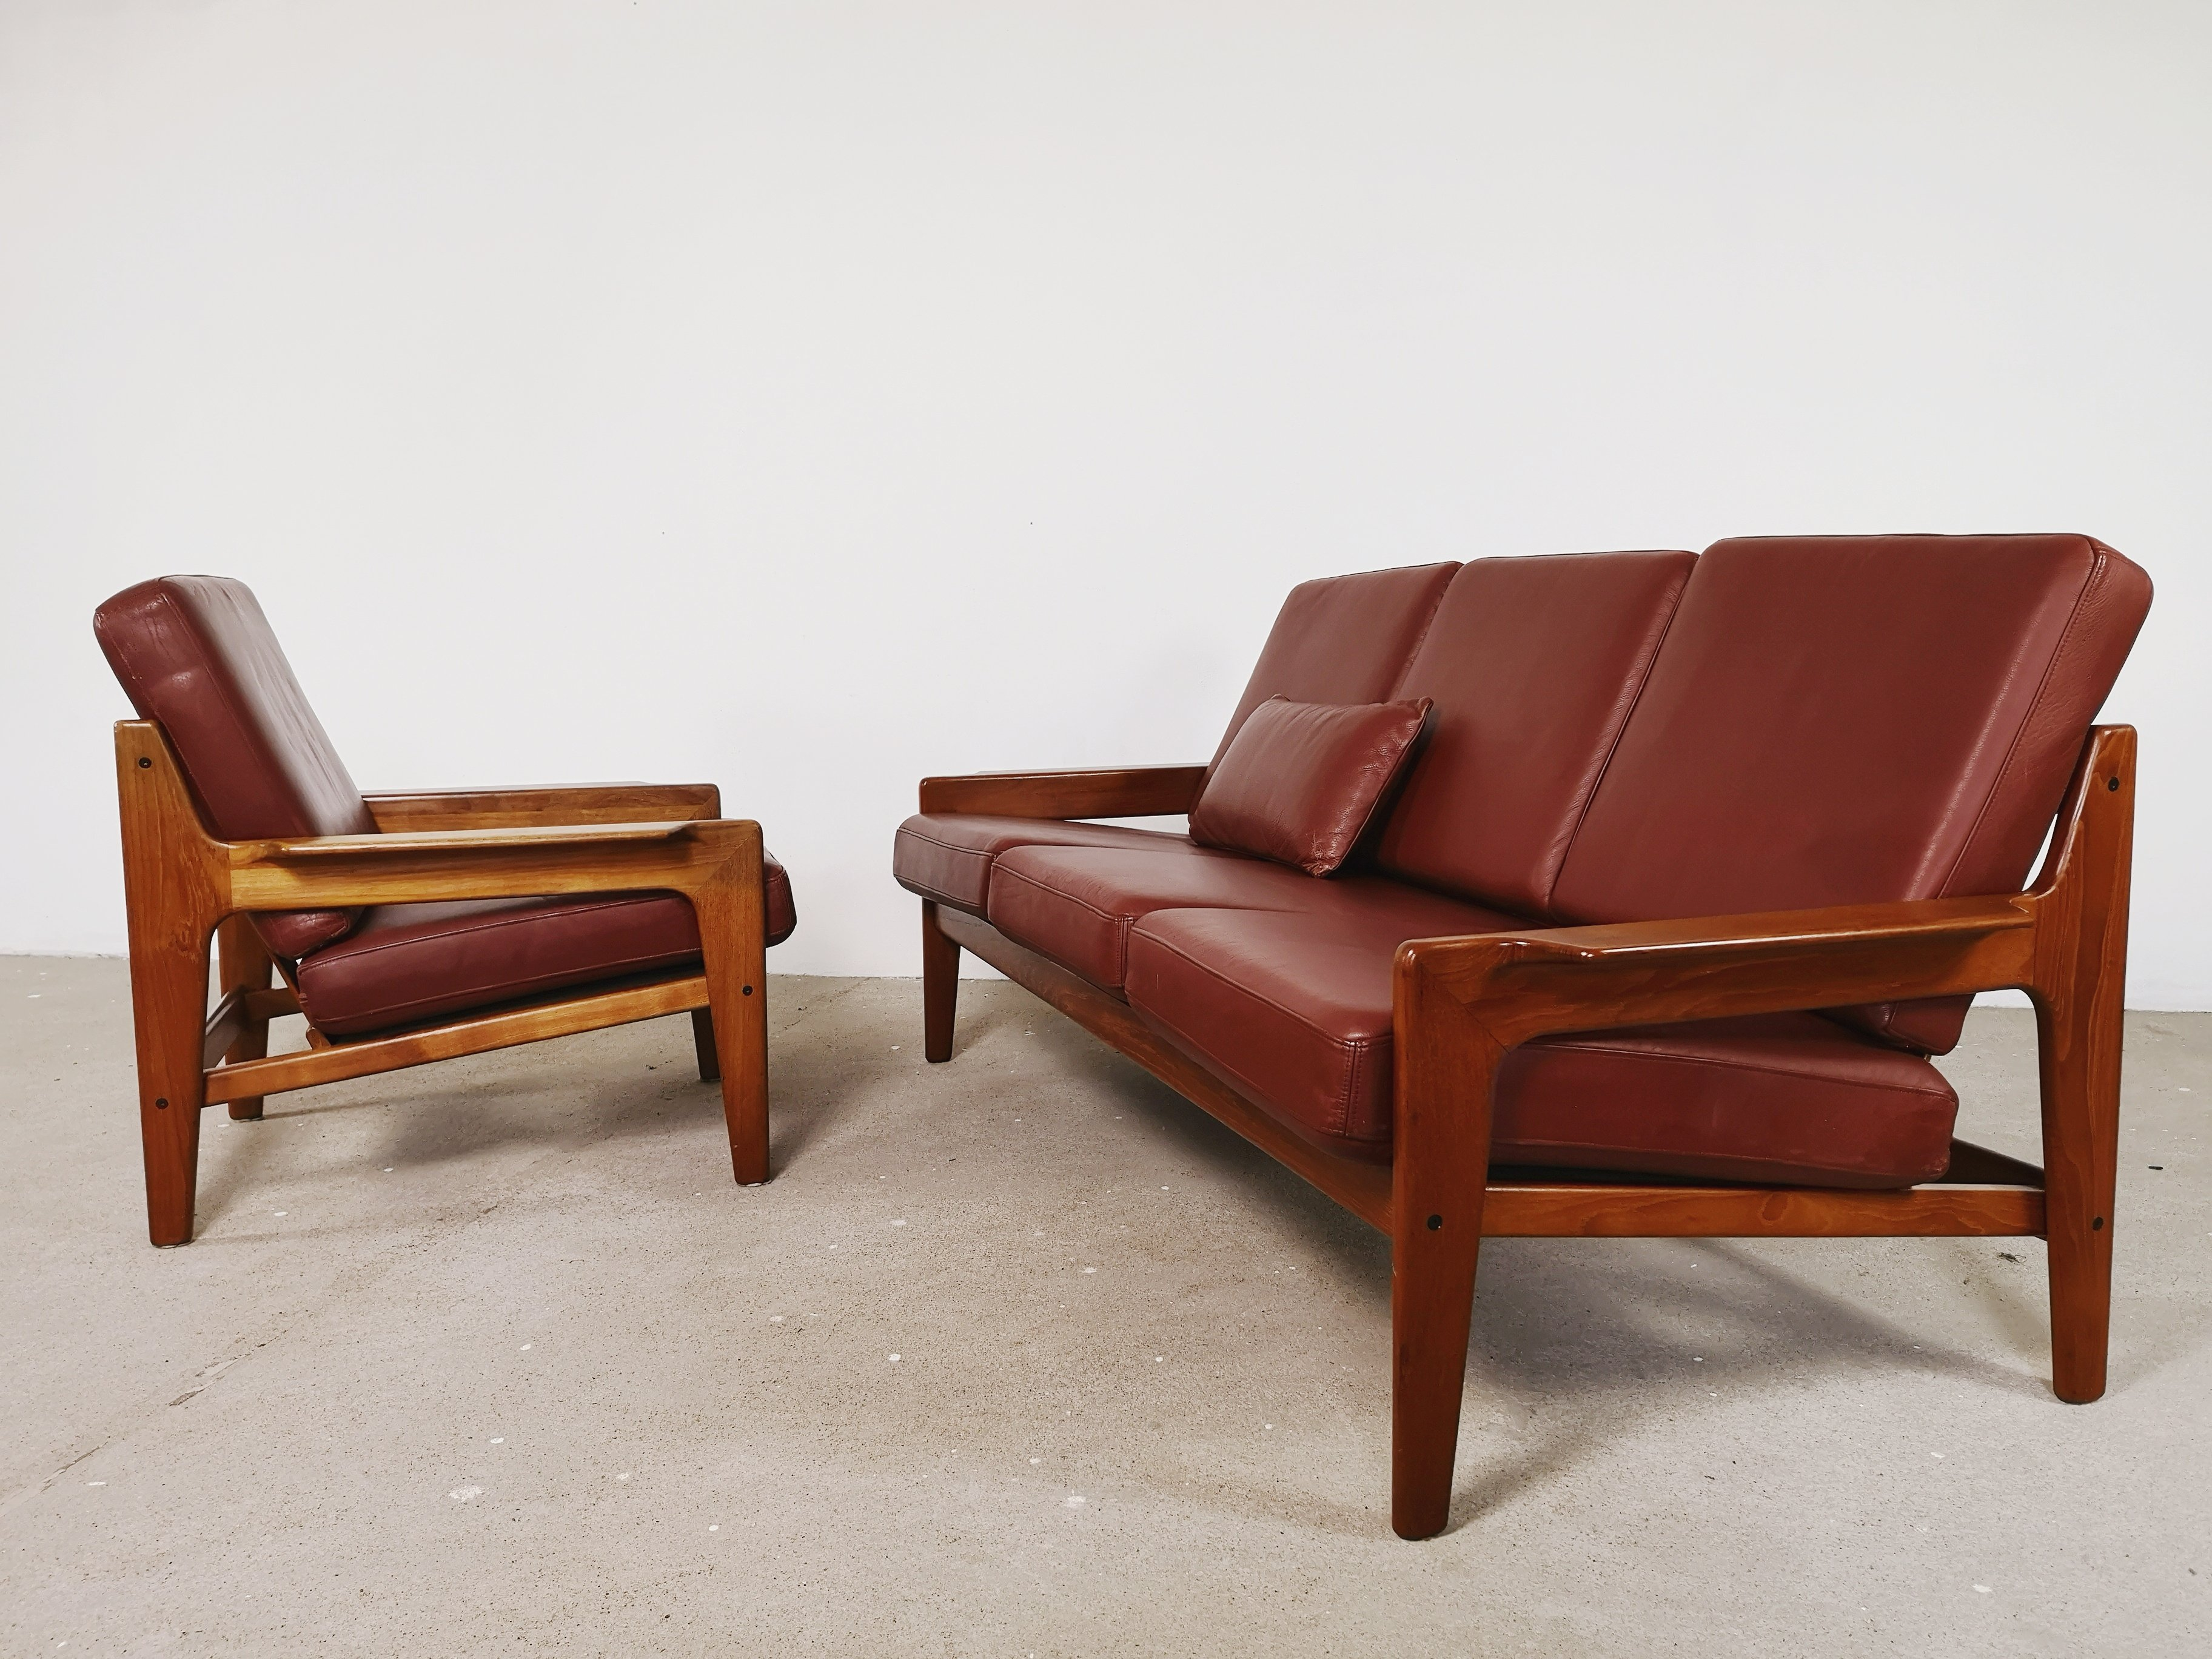 Outstanding Redbrown Leather Sofa Chair By Arne Wahl Iversen Creativecarmelina Interior Chair Design Creativecarmelinacom